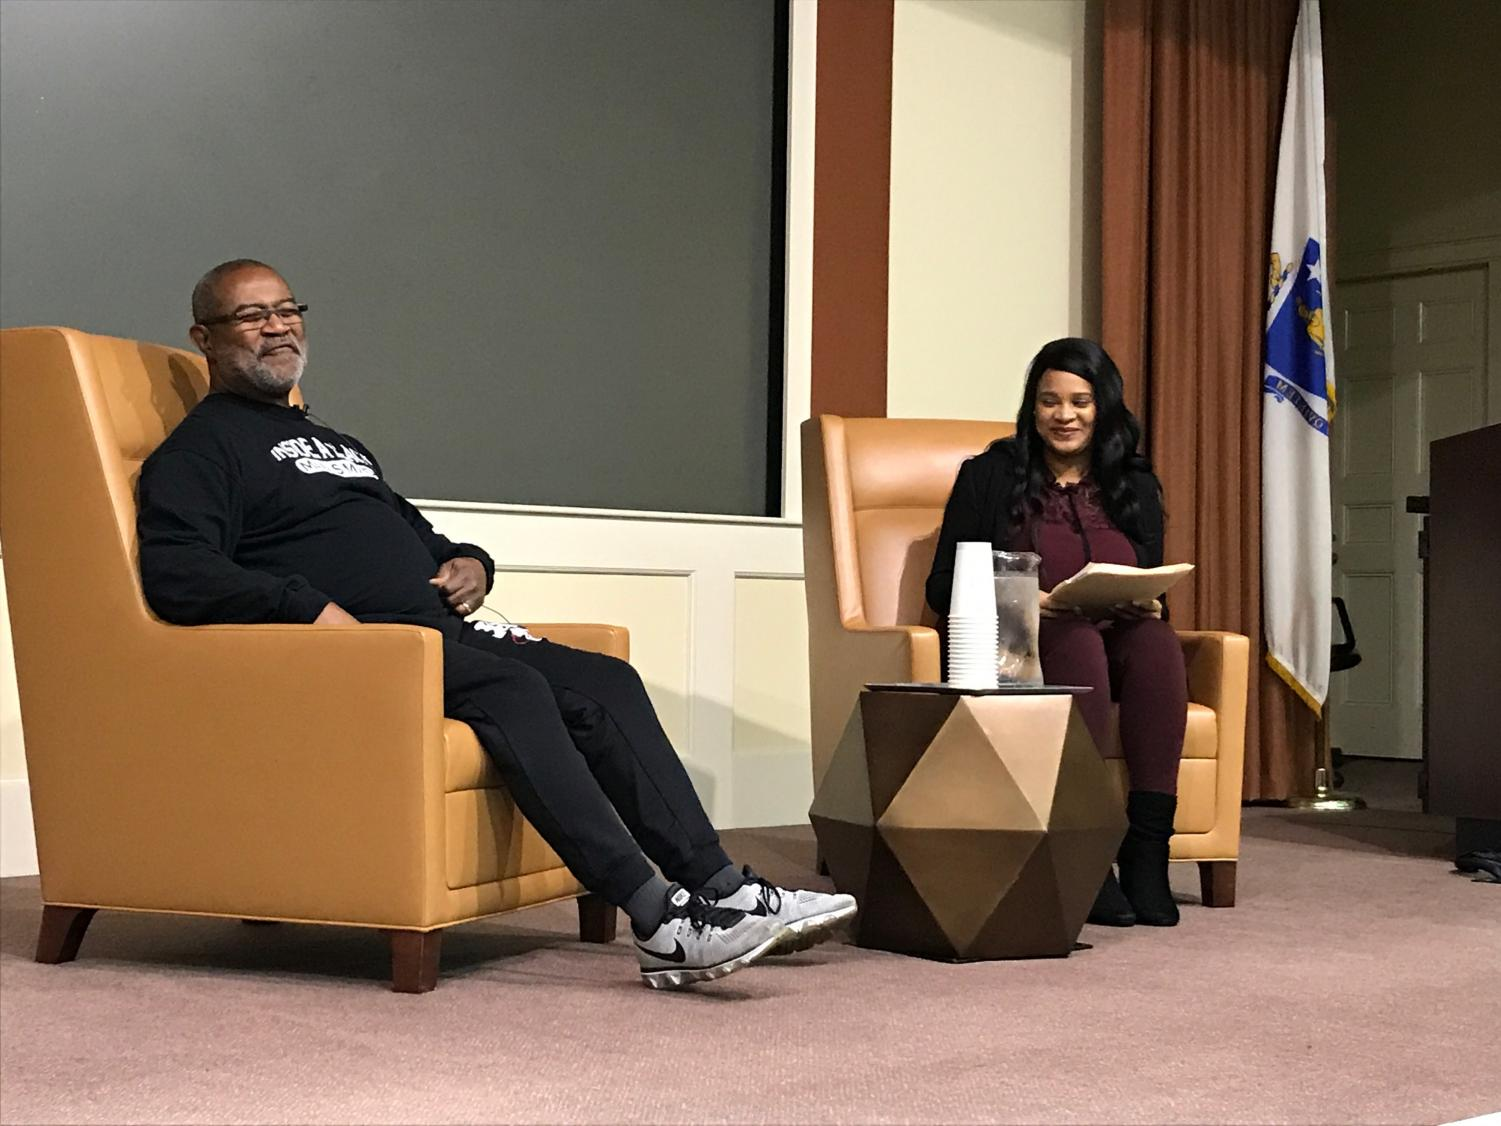 Ron Stallworth, the BlackkKlansman, is interviewed by Suffolk Student Jolice Grant